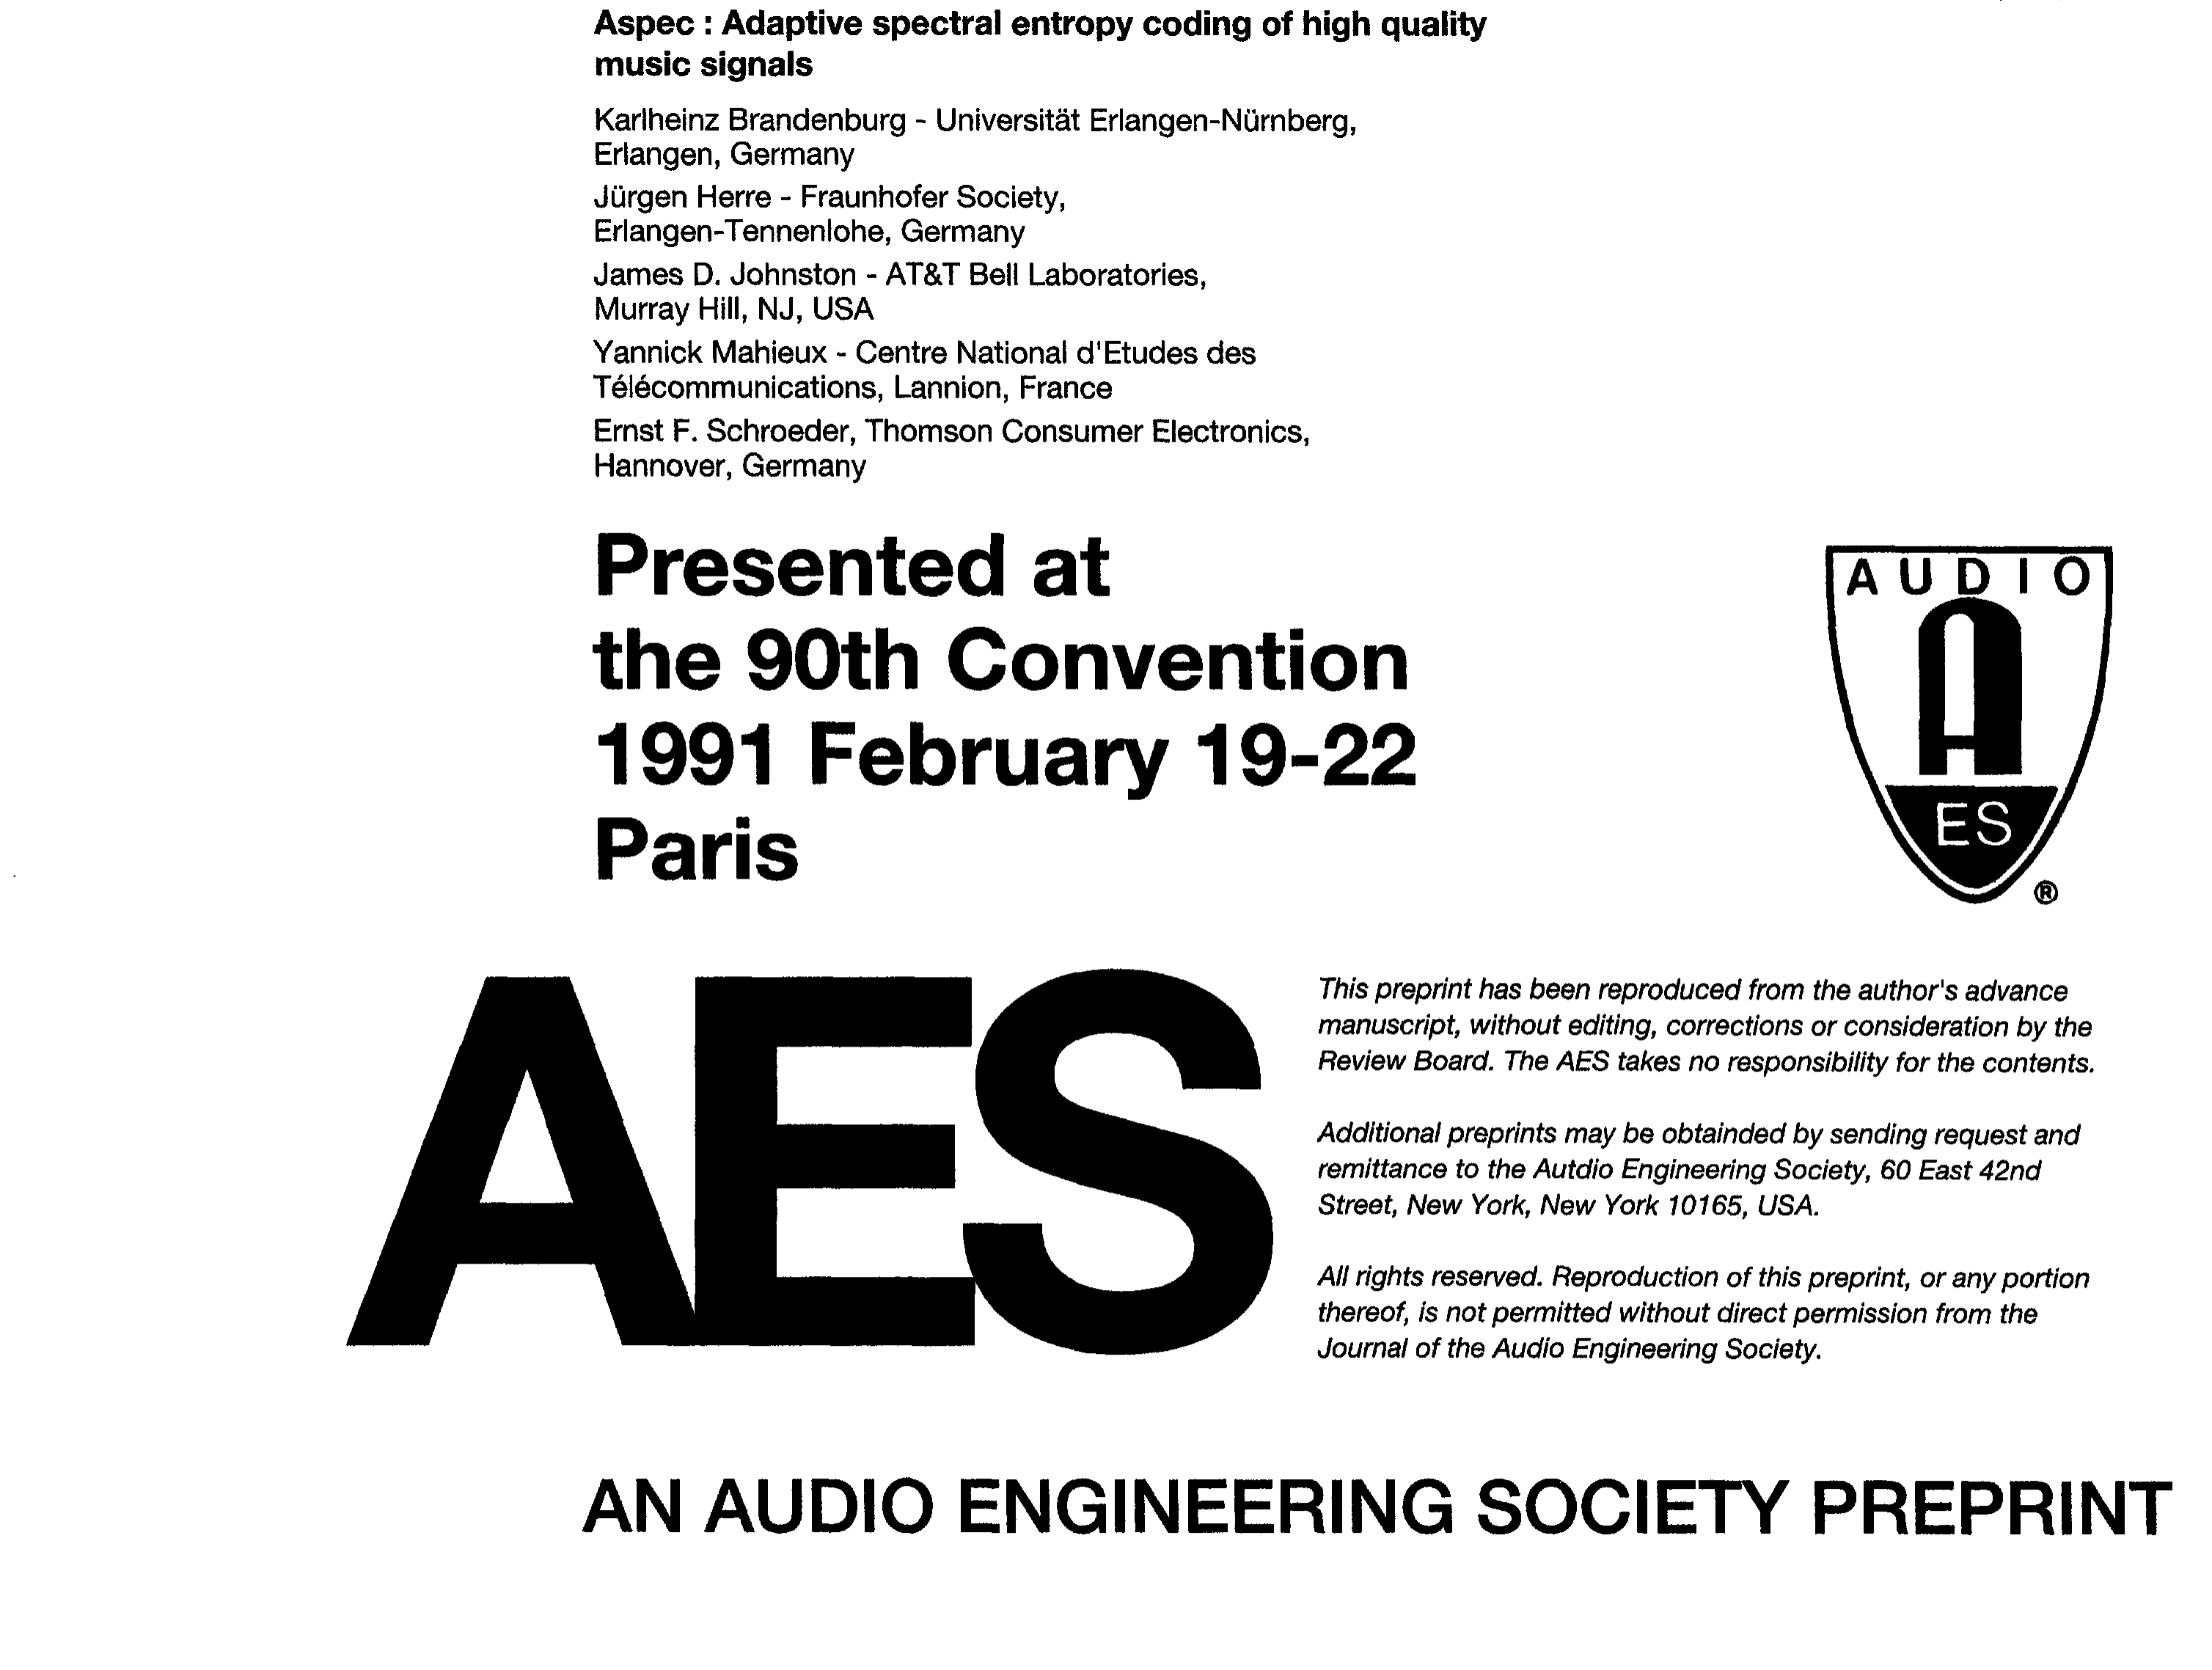 Aes e library aspec adaptive spectral entropy coding of high aes e library aspec adaptive spectral entropy coding of high quality music signals malvernweather Image collections